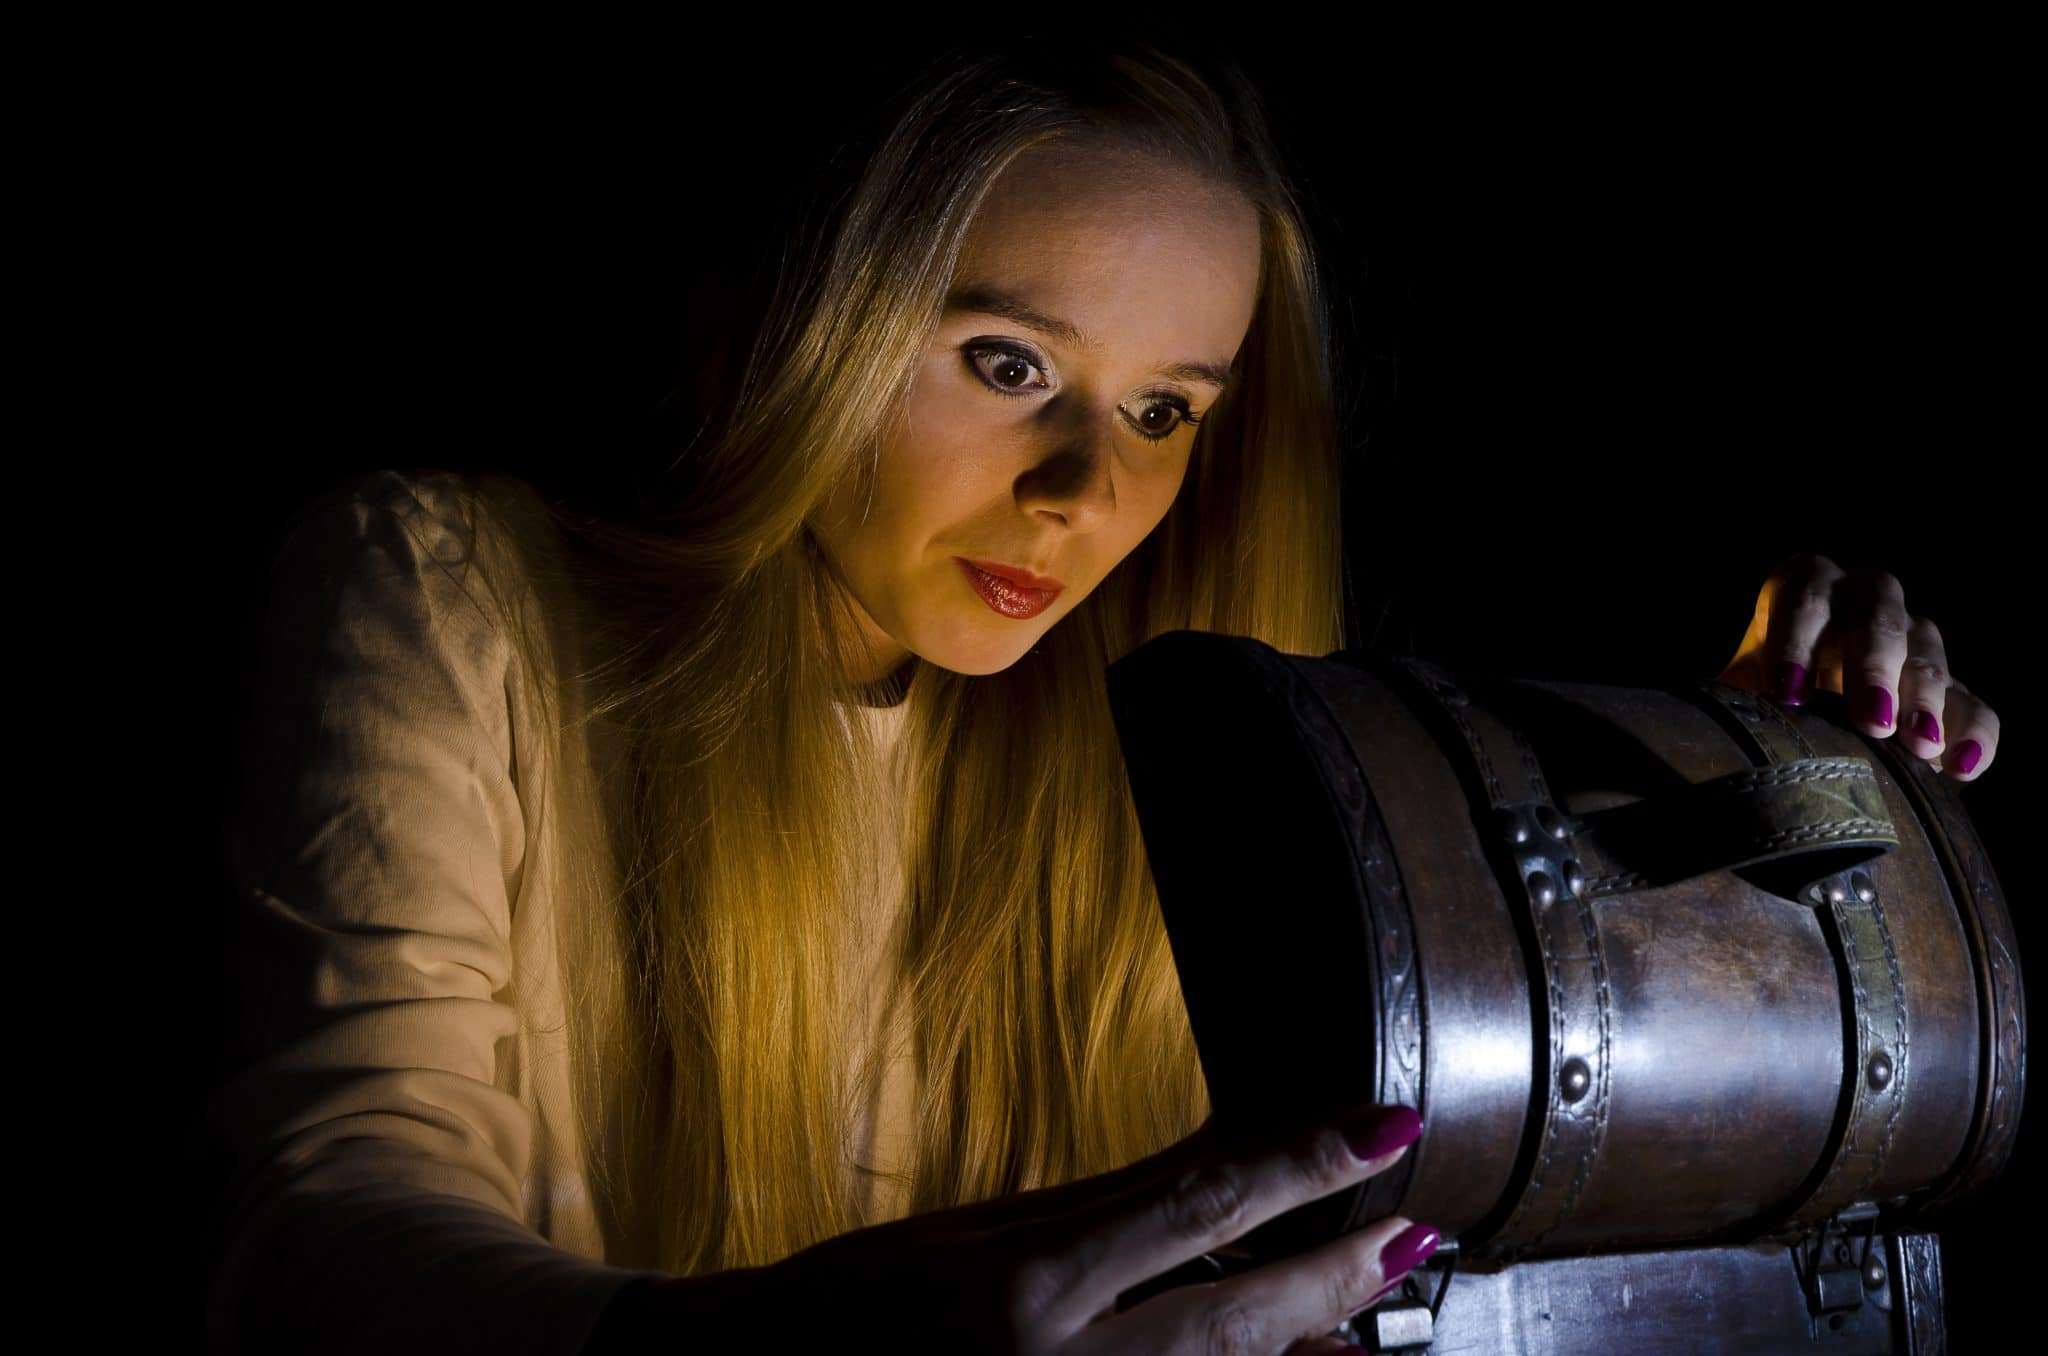 woman opening a small treasure chest in the dark